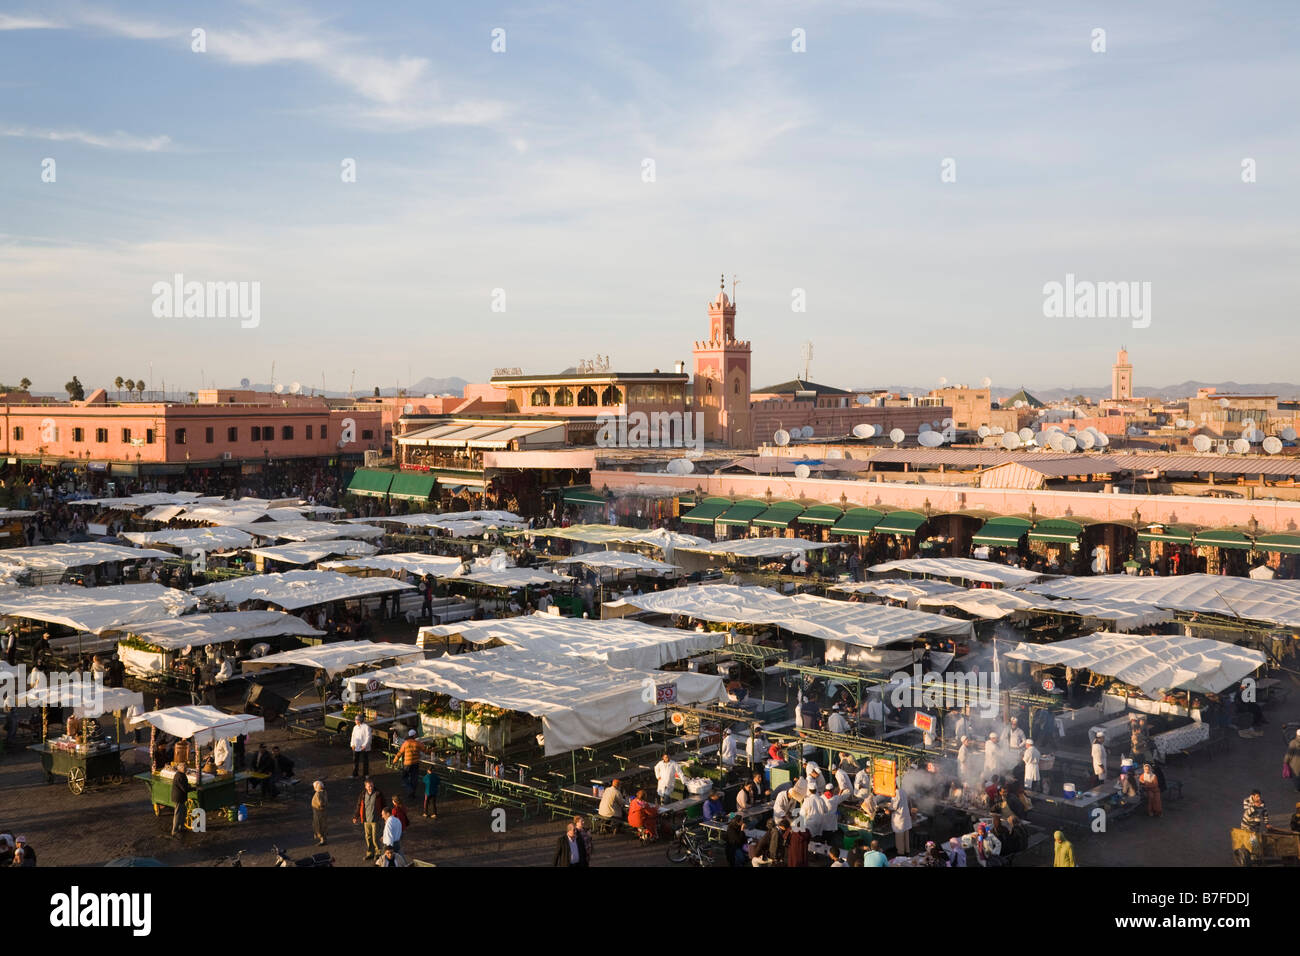 Marrakech Morocco. High view of food stalls and people in Place Djemma el Fna square in early evening in the Medina - Stock Image